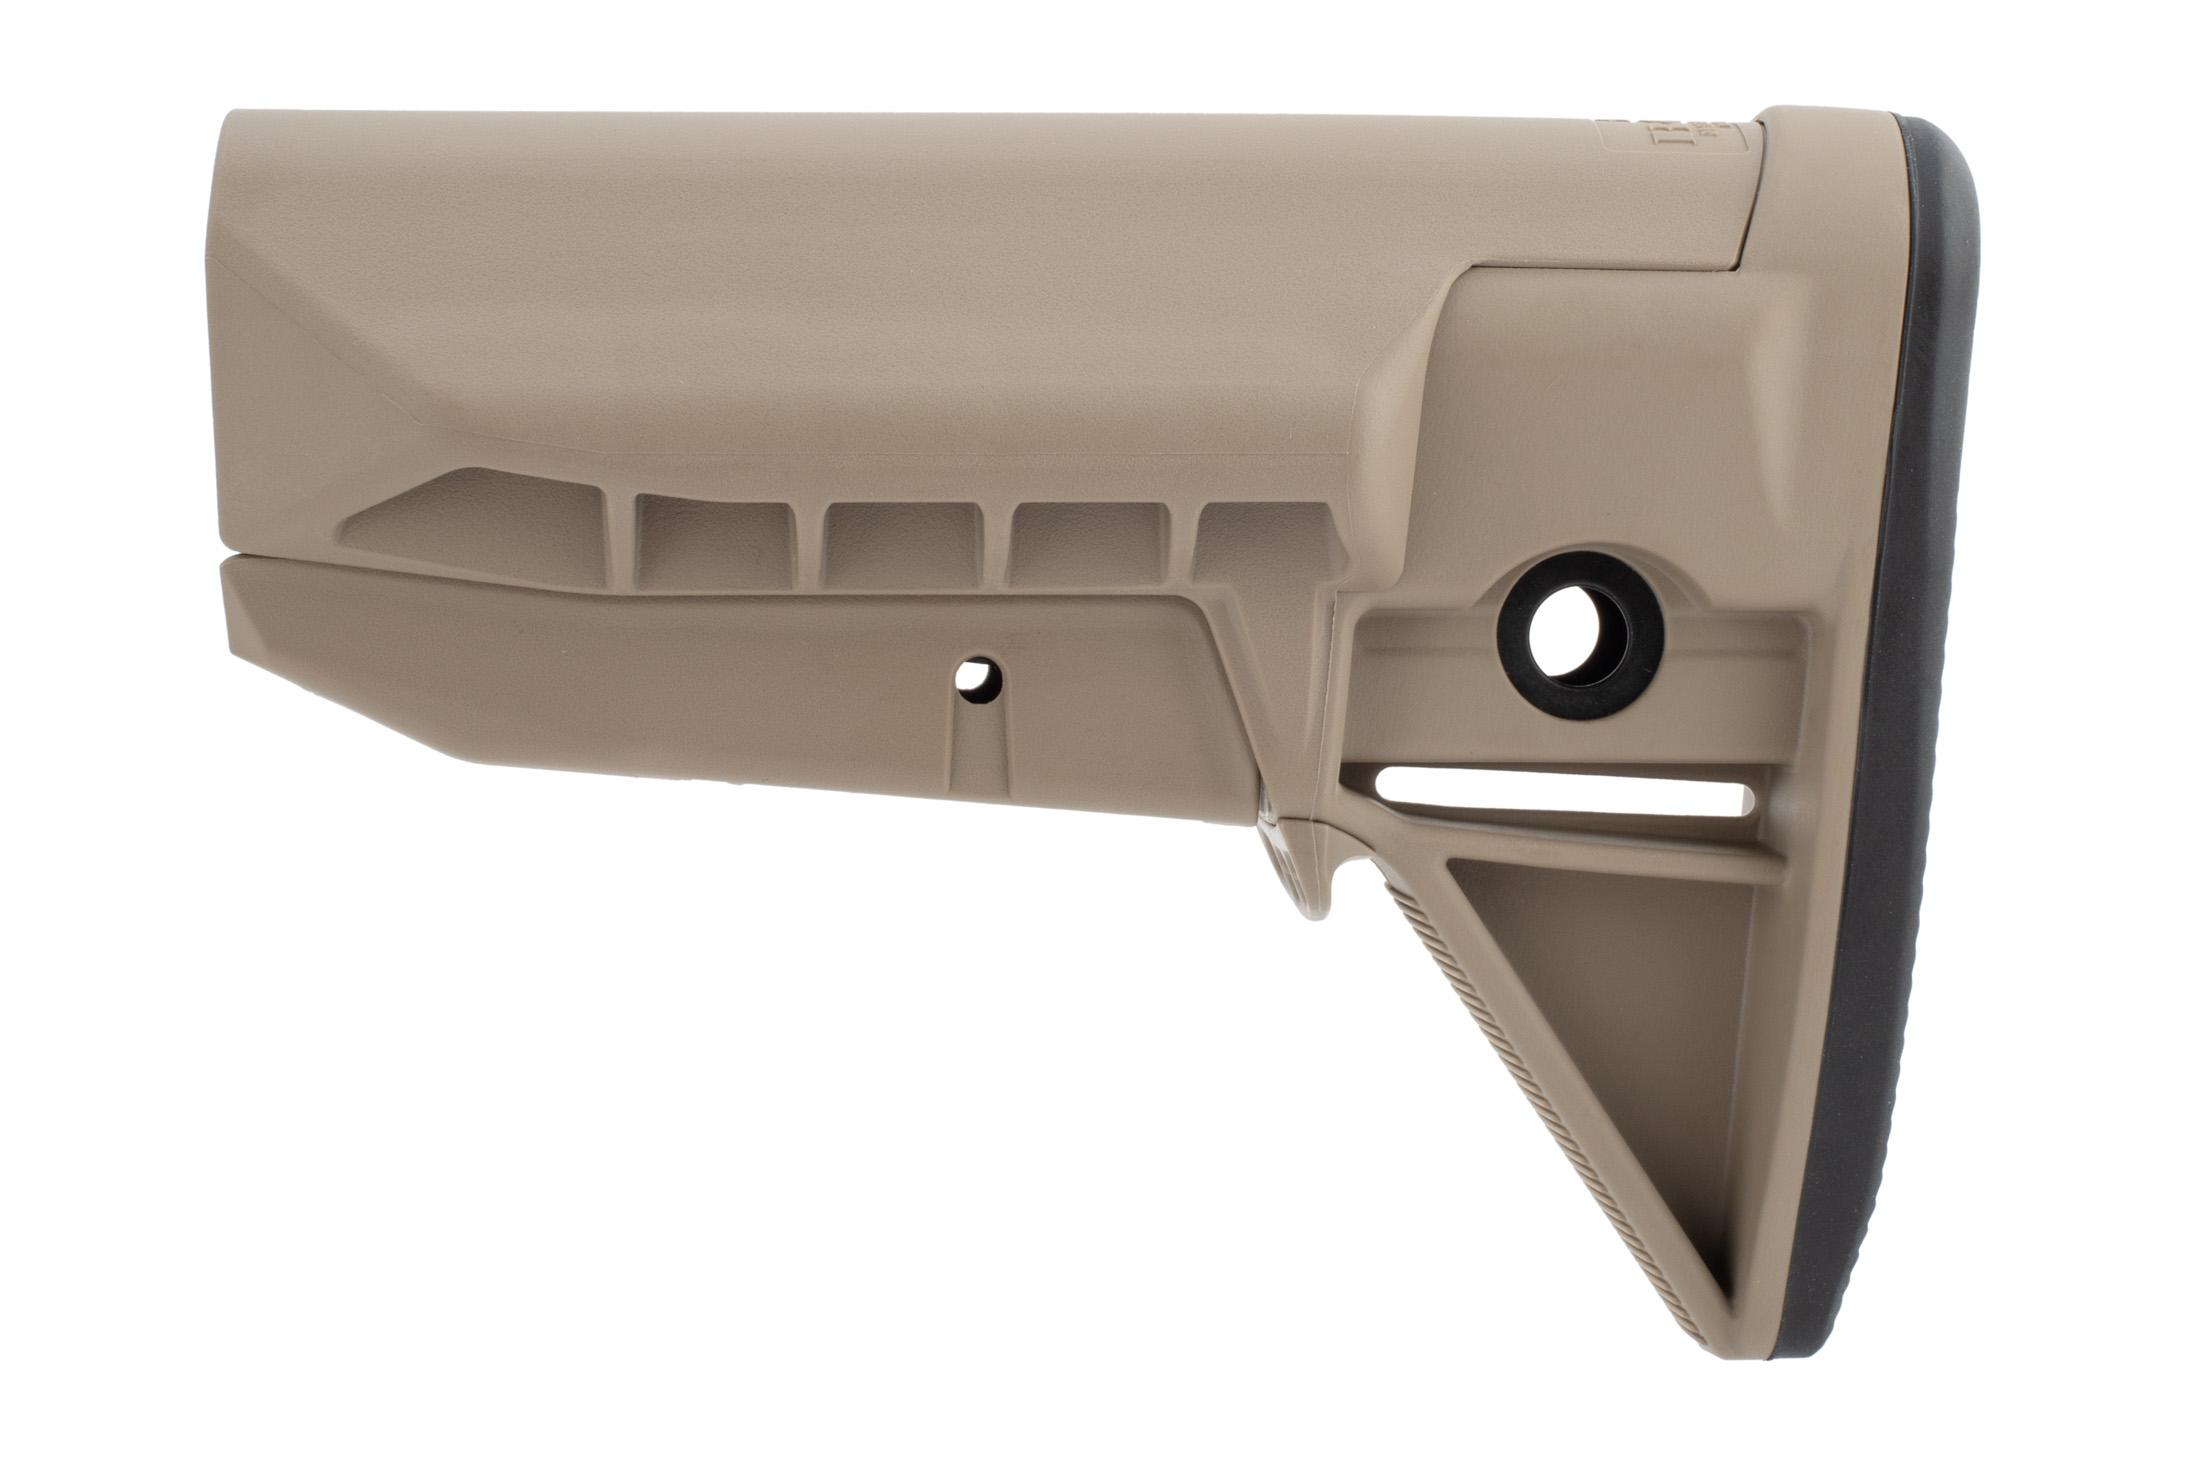 The Bravo Company Manufacturing BCMGunfighter sopmod stock mod 0 FDE is durable and lightweight